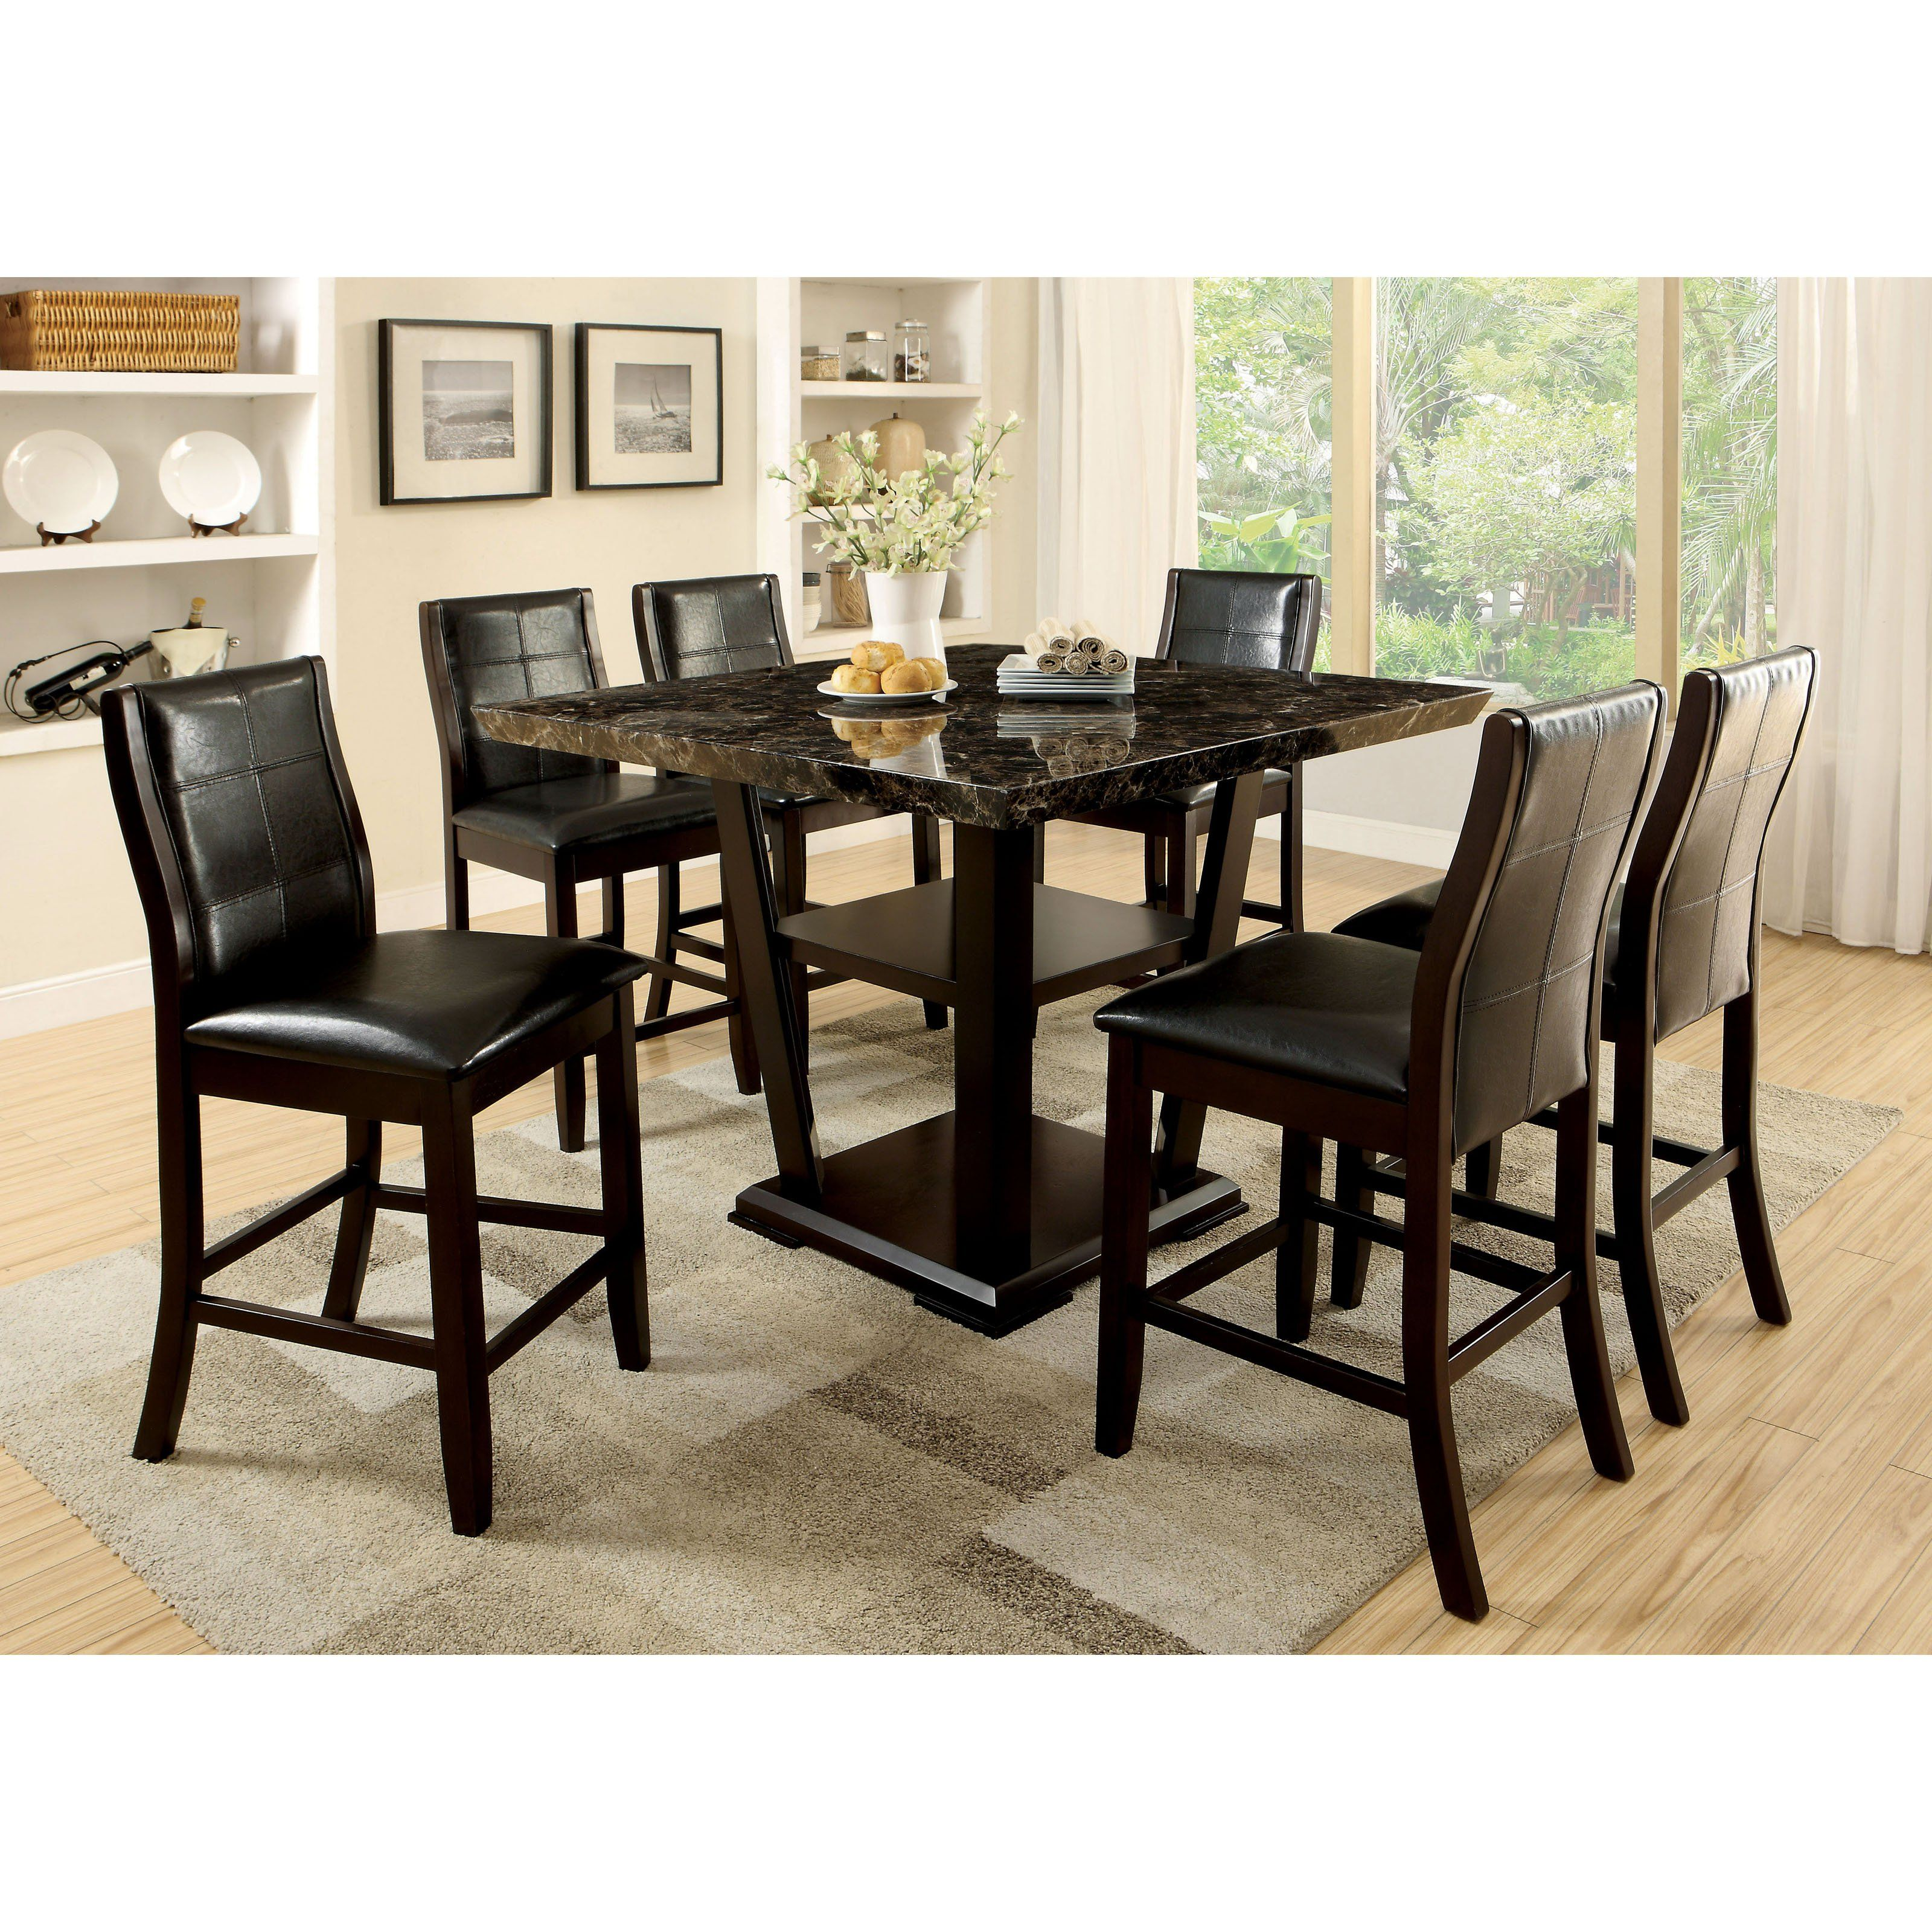 High Quality Furniture Of America Newrock 7 Piece Counter Height Faux Marble Dining  Table Set   IDF